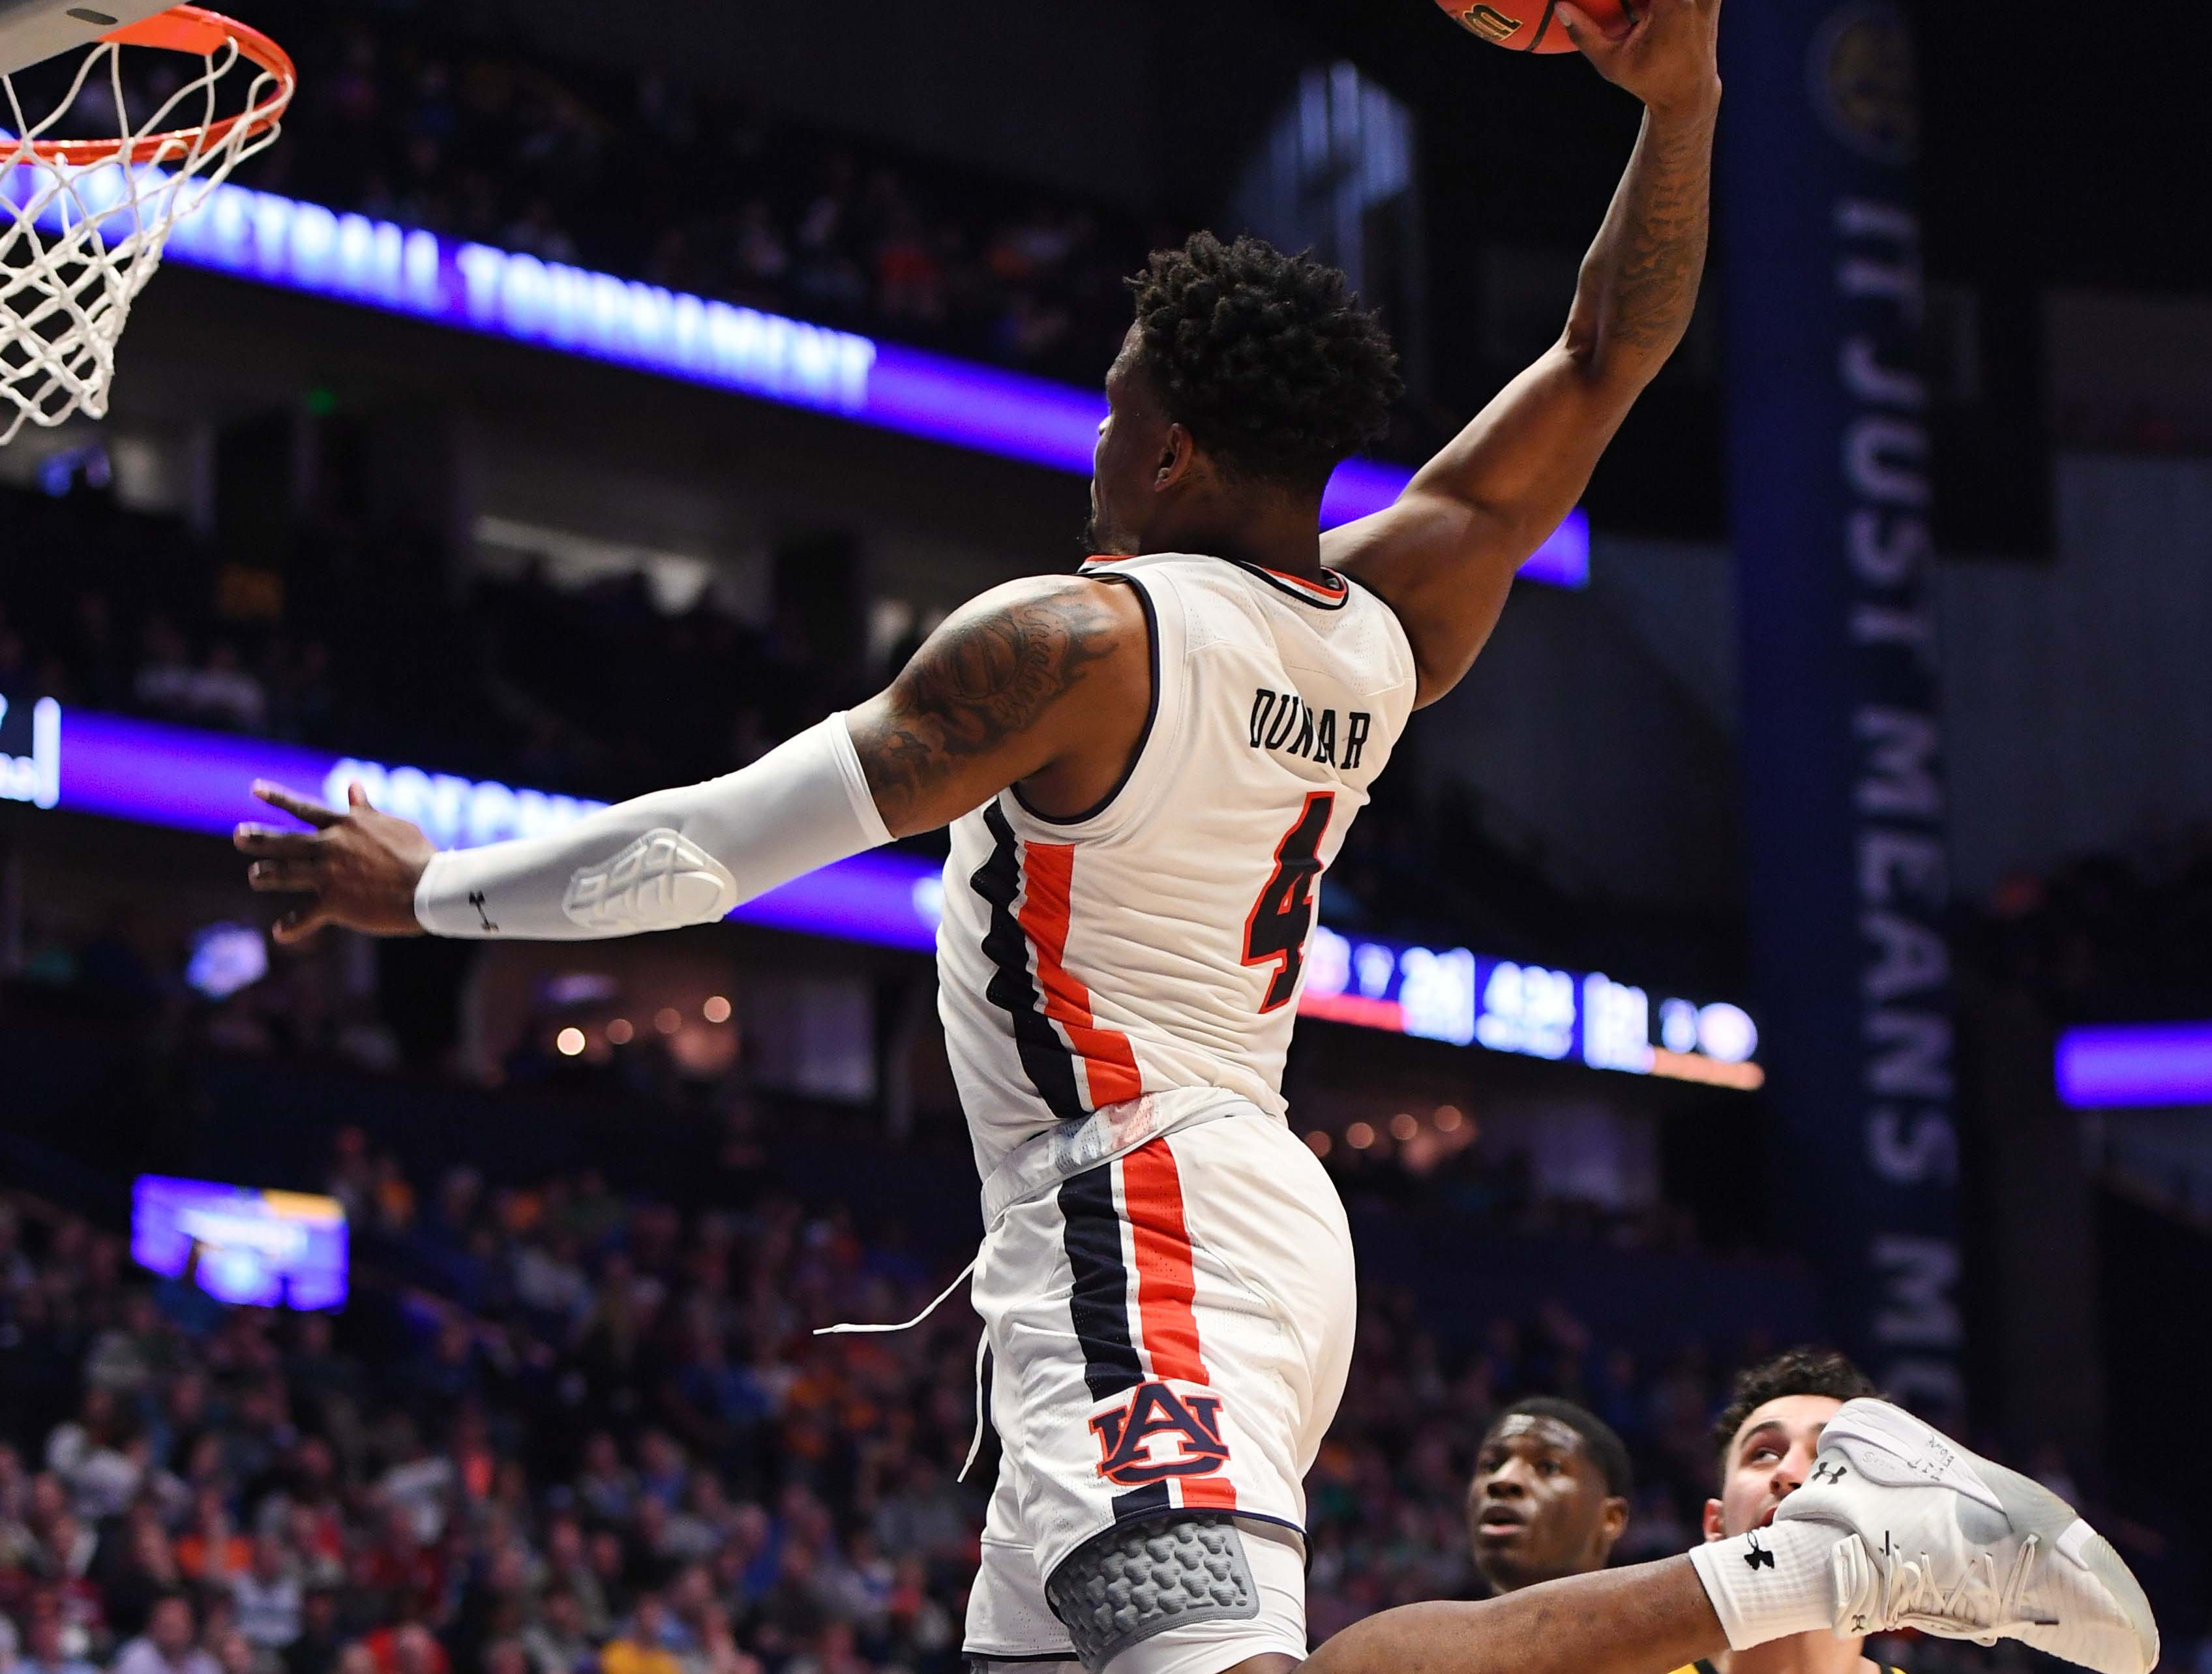 Mar 14, 2019; Nashville, TN, USA; Auburn Tigers guard Malik Dunbar (4) dunks the ball during the first half against the Missouri Tigers of the SEC conference tournament at Bridgestone Arena. Mandatory Credit: Christopher Hanewinckel-USA TODAY Sports